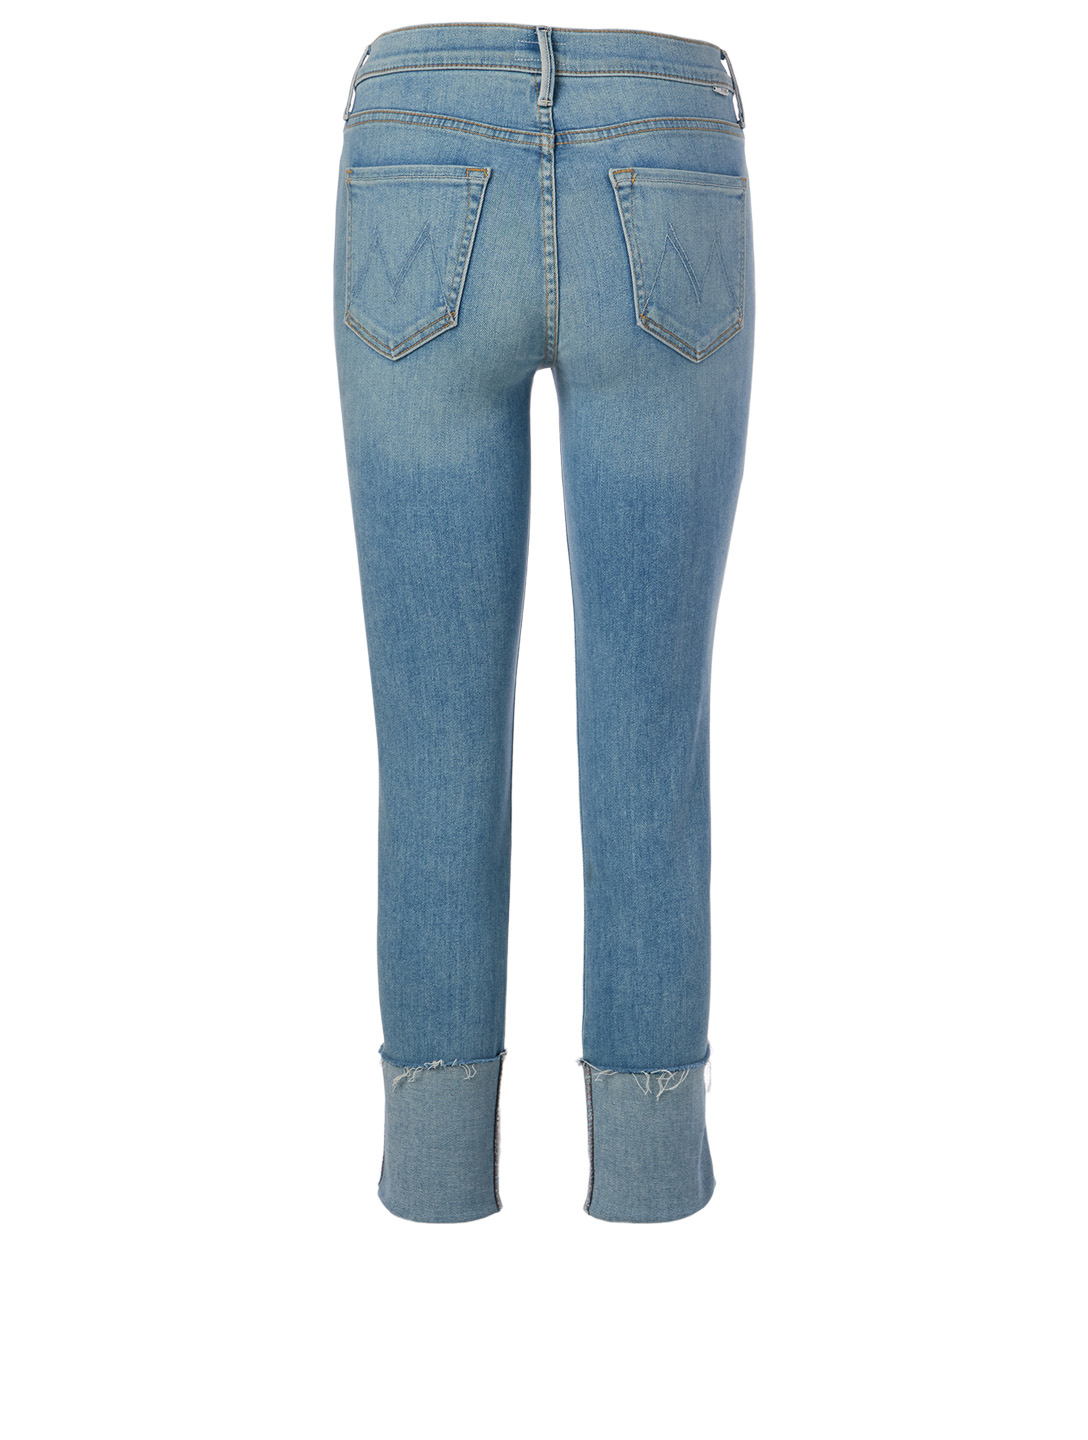 MOTHER Pony Boy Jeans With Ankle Fray Women's Blue